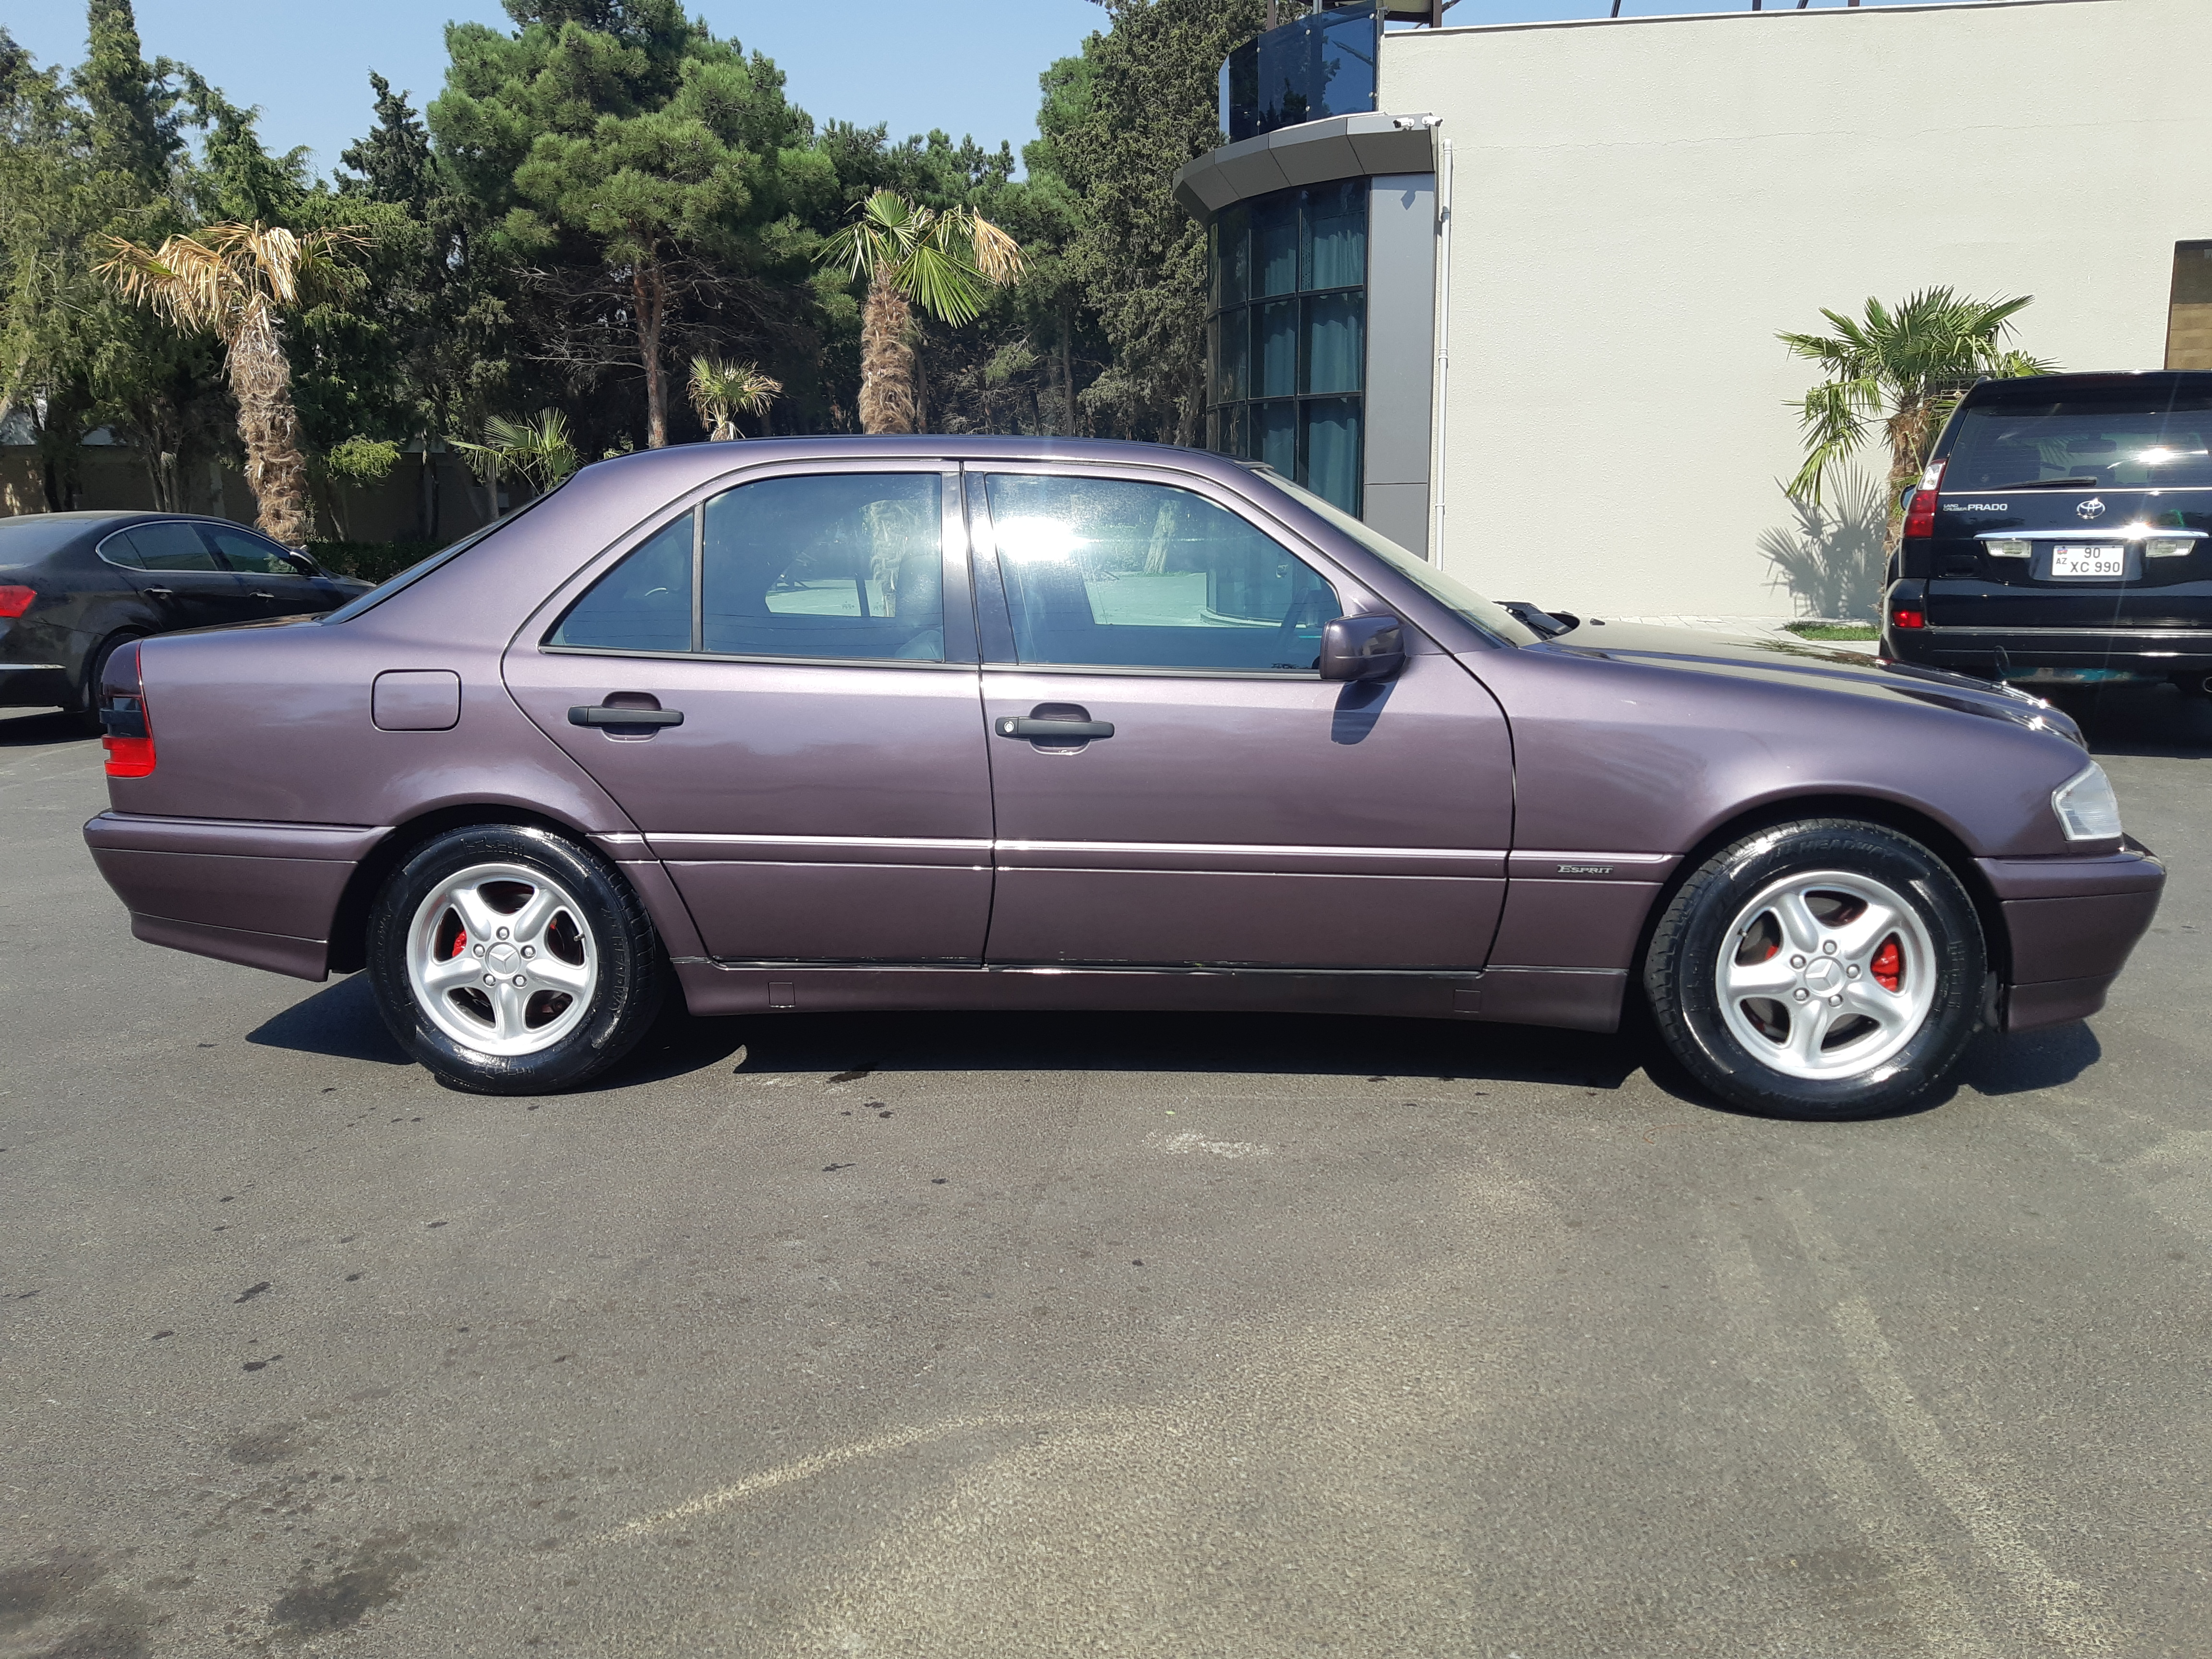 Mercedes-Benz C 180 1.8(lt) 1995 Second hand  $5000